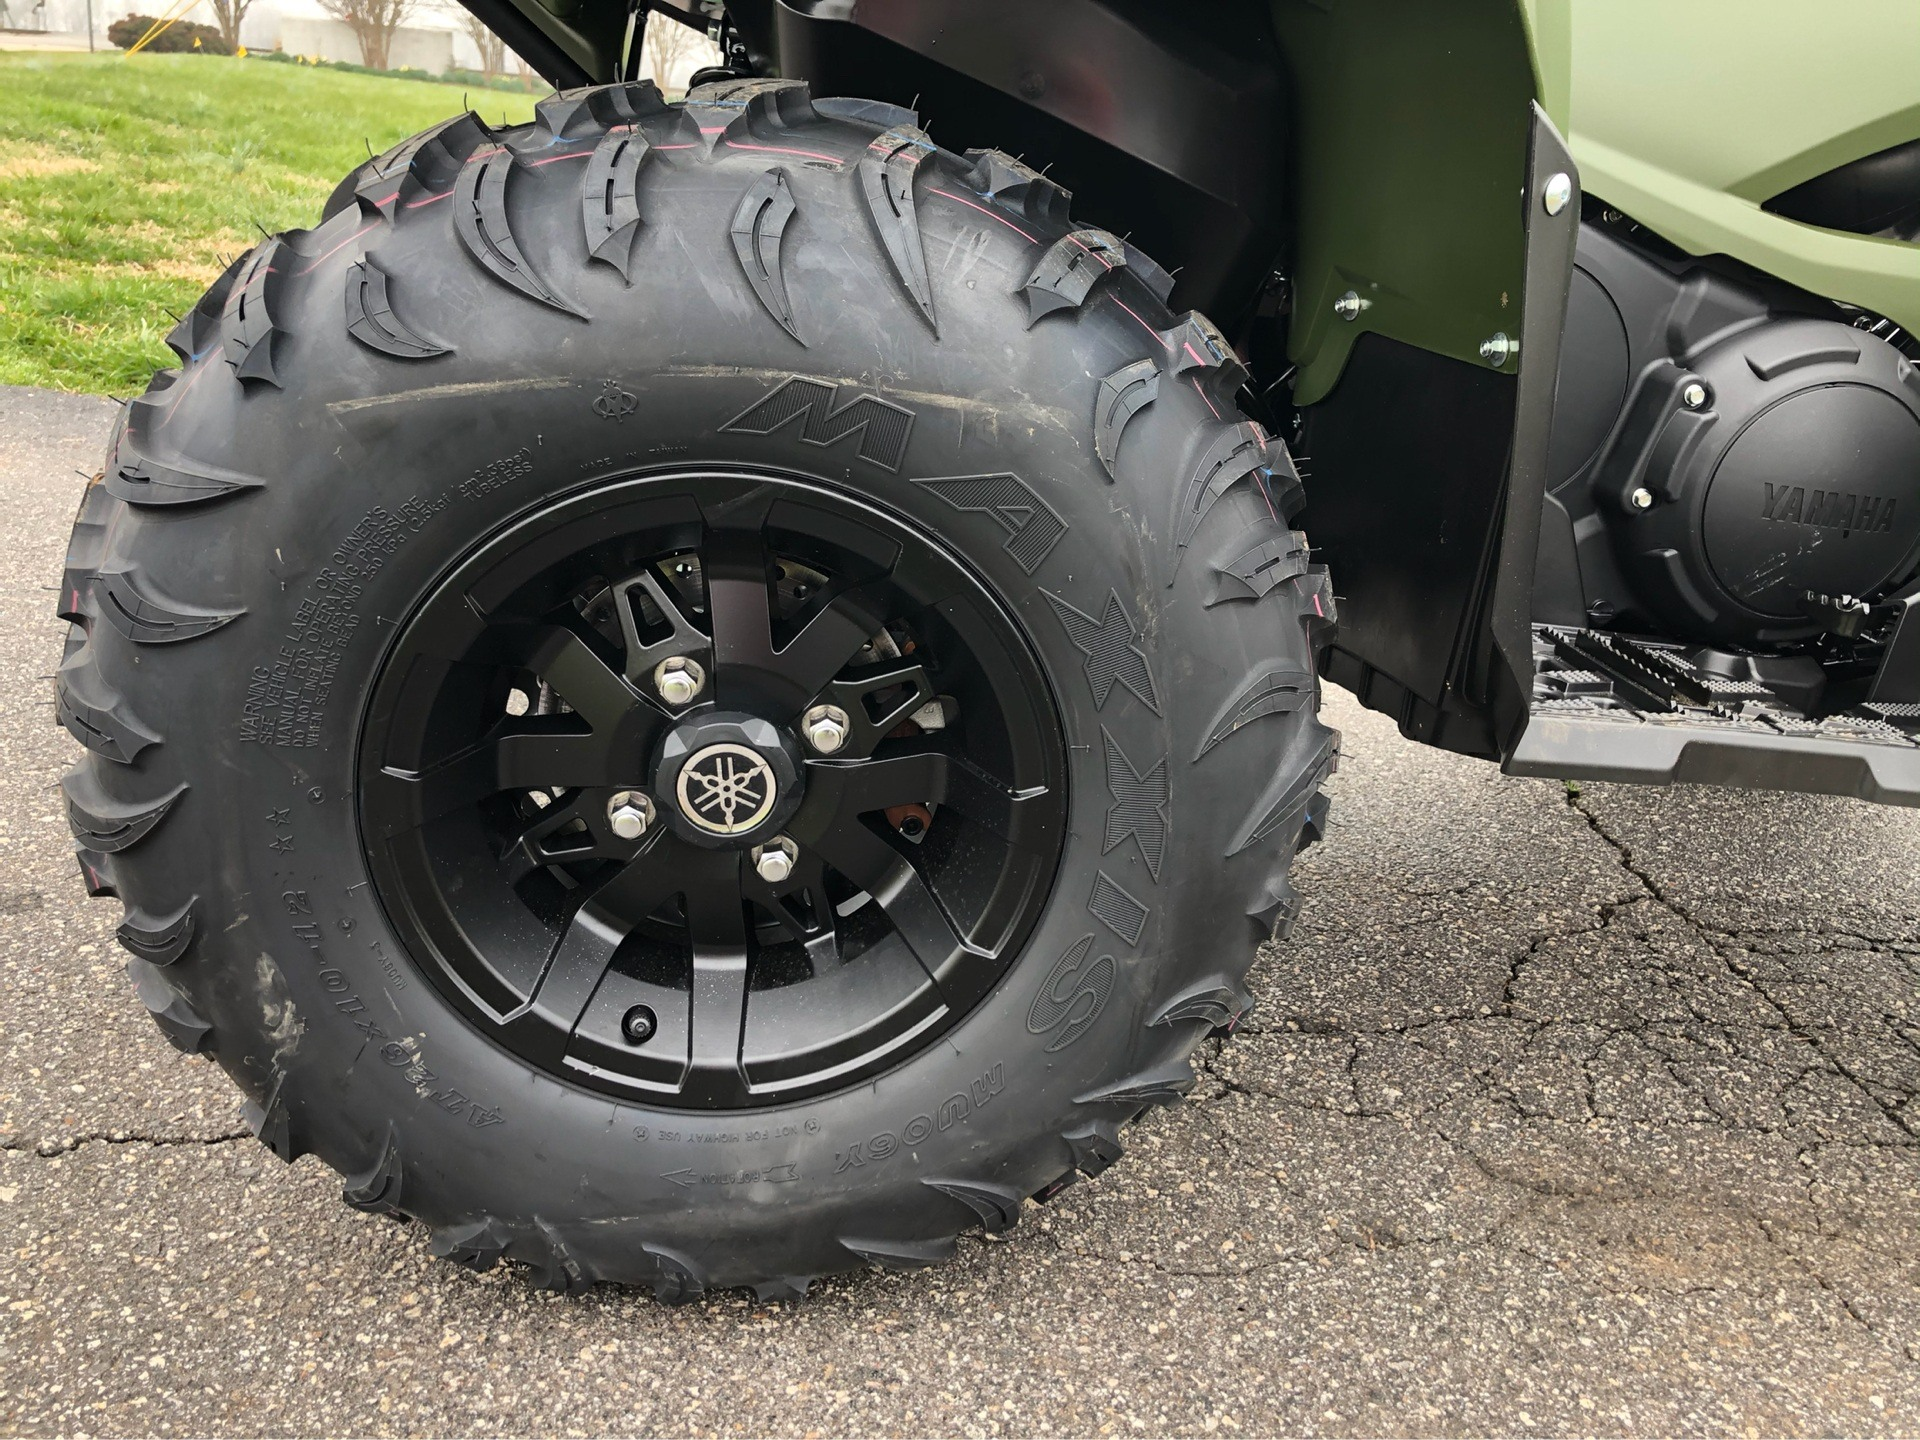 2020 Yamaha Grizzly EPS in Statesville, North Carolina - Photo 3